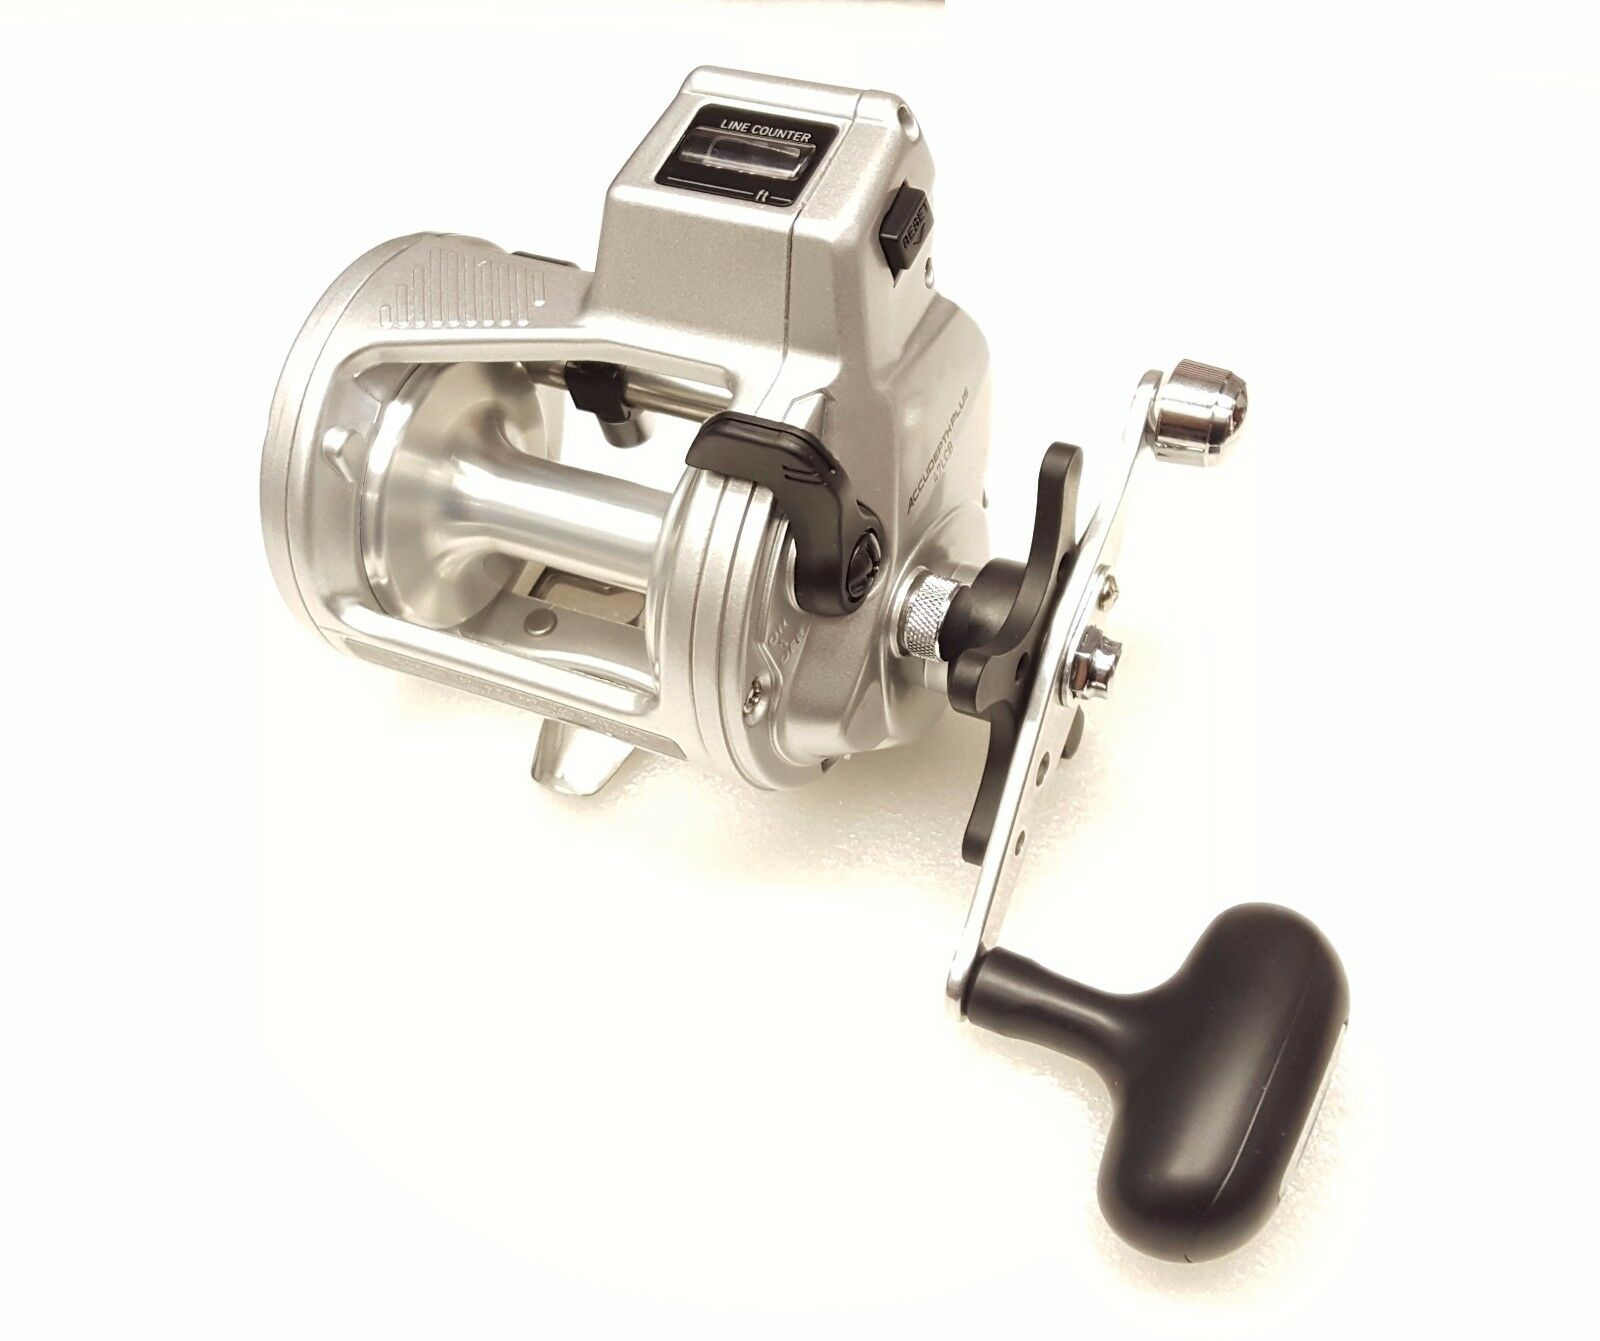 Daiwa Accudepth Plus-B 4.2 1 Line Counter Casting Fishing Reel - ADP47LCB